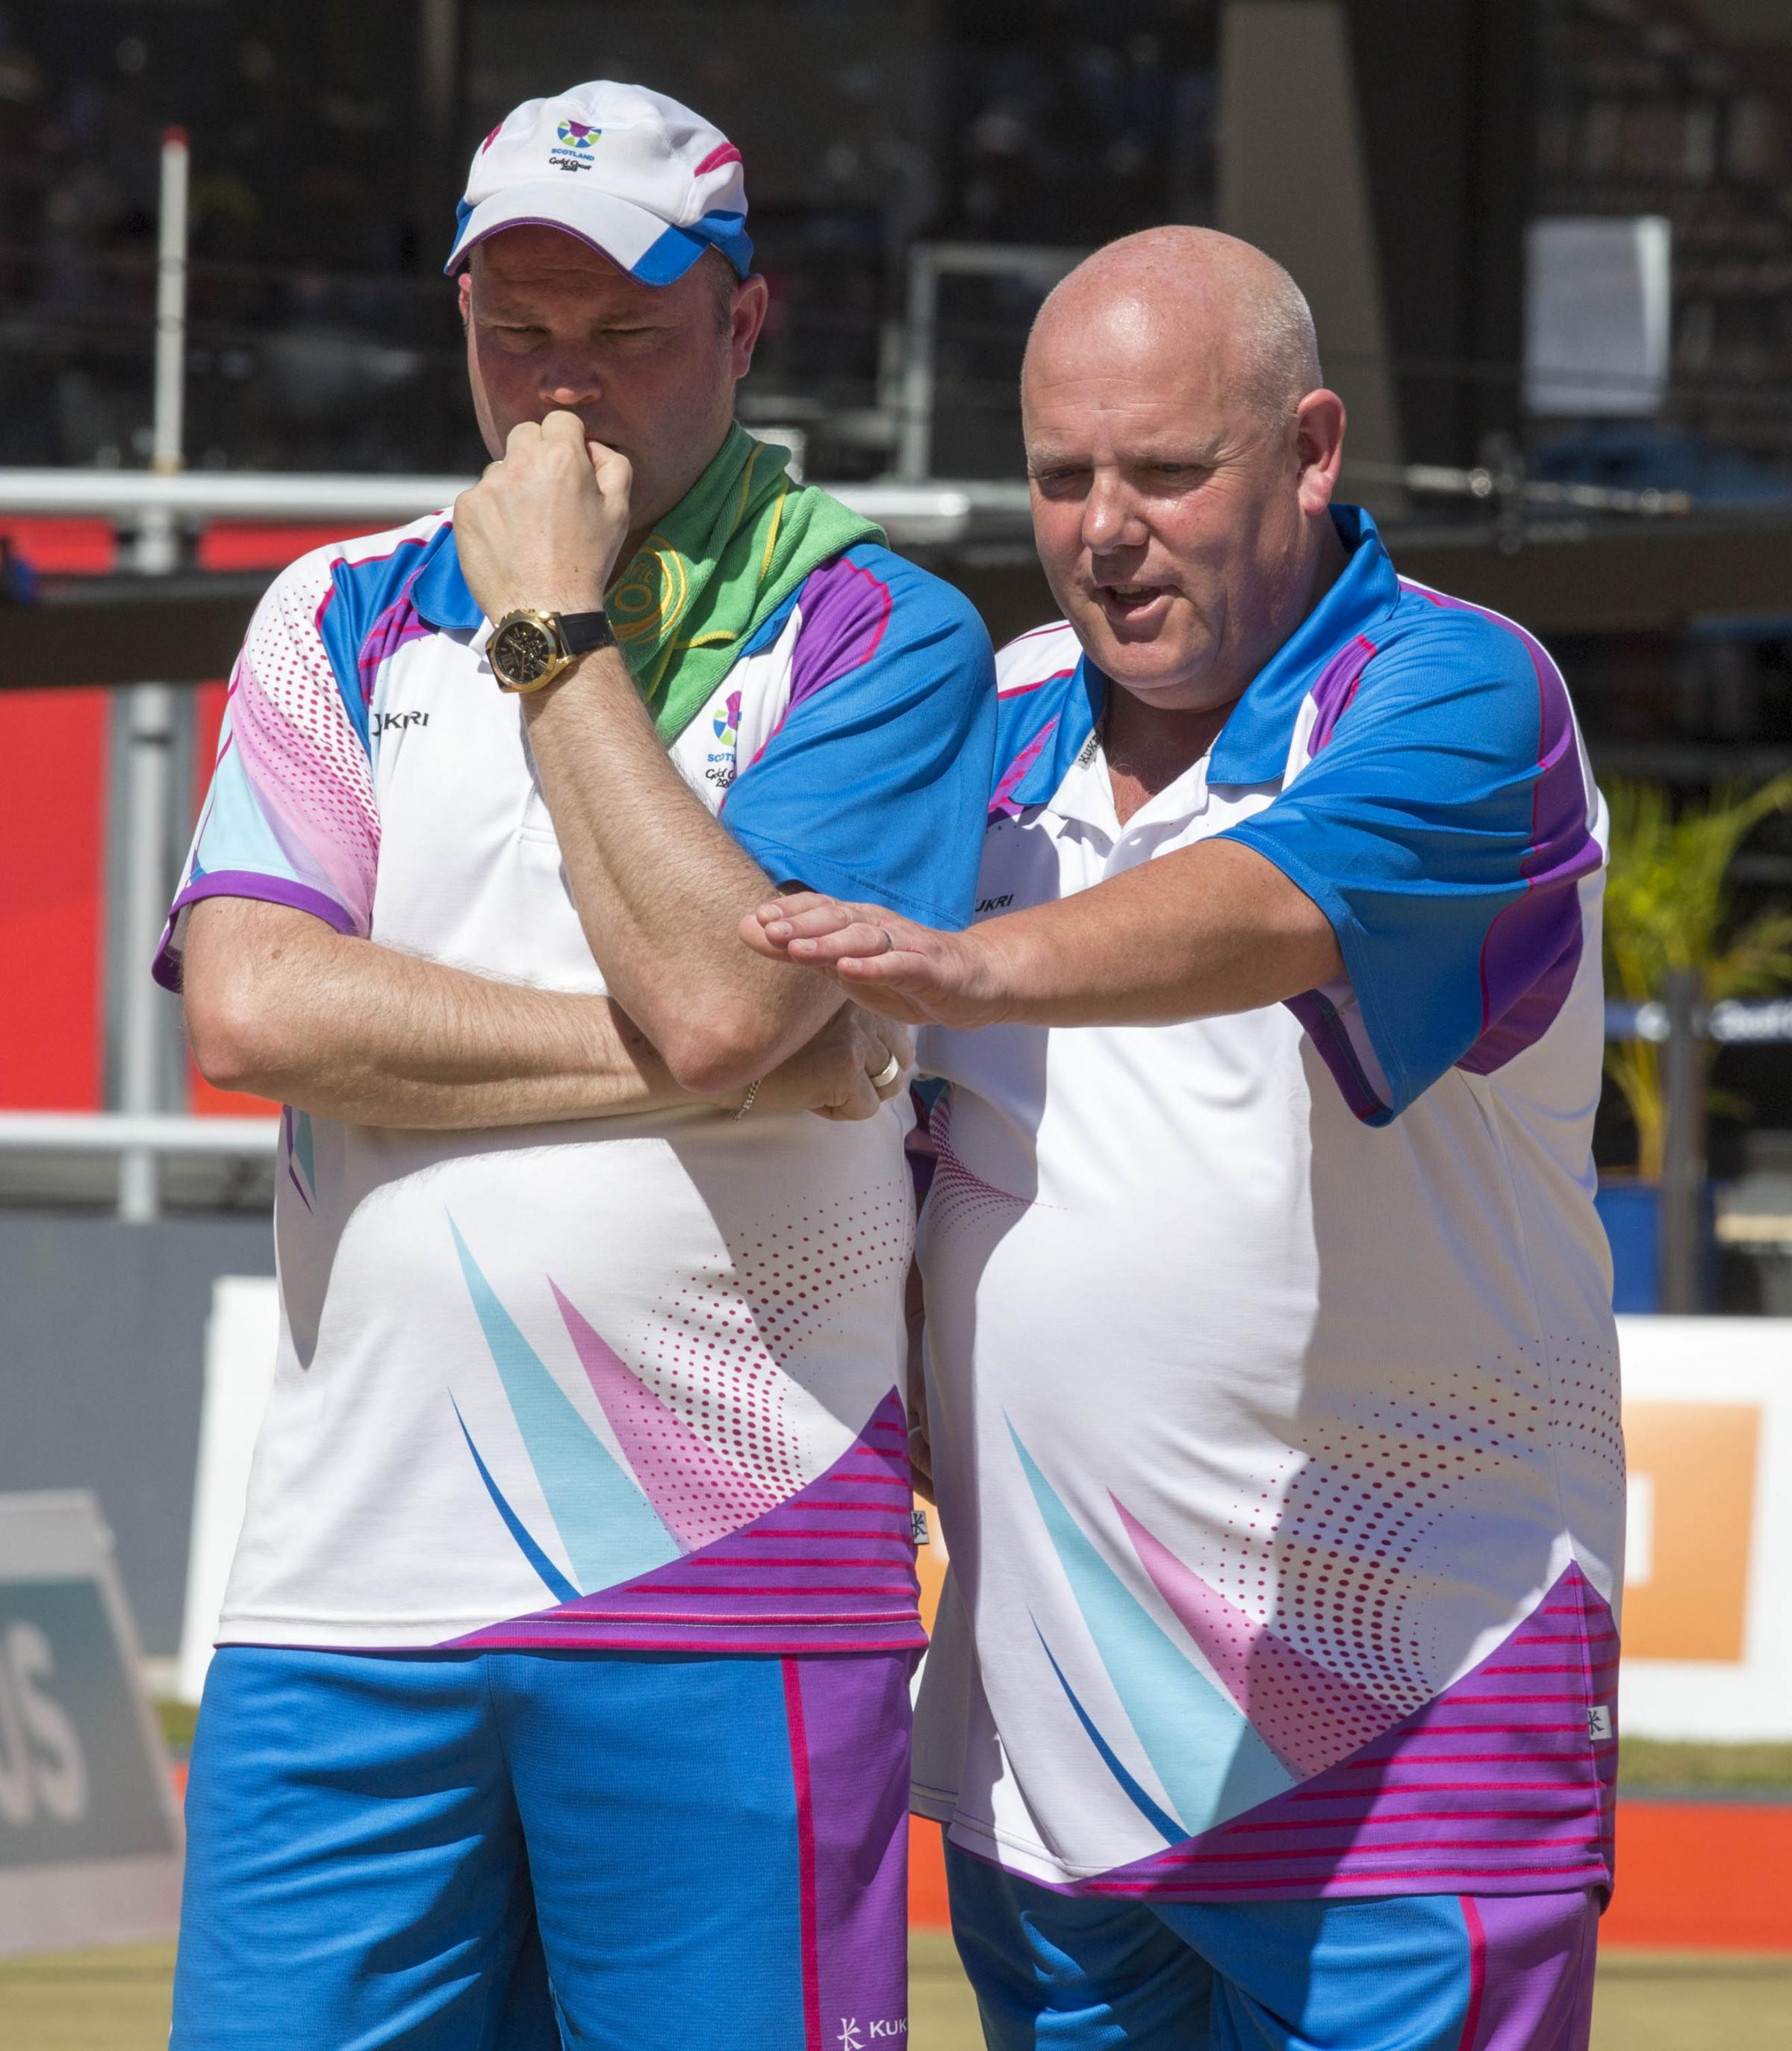 There was disappointment for Alex Marshall (right) and Paul Foster in Australia. Image Jeff Holmes/Team Scotland